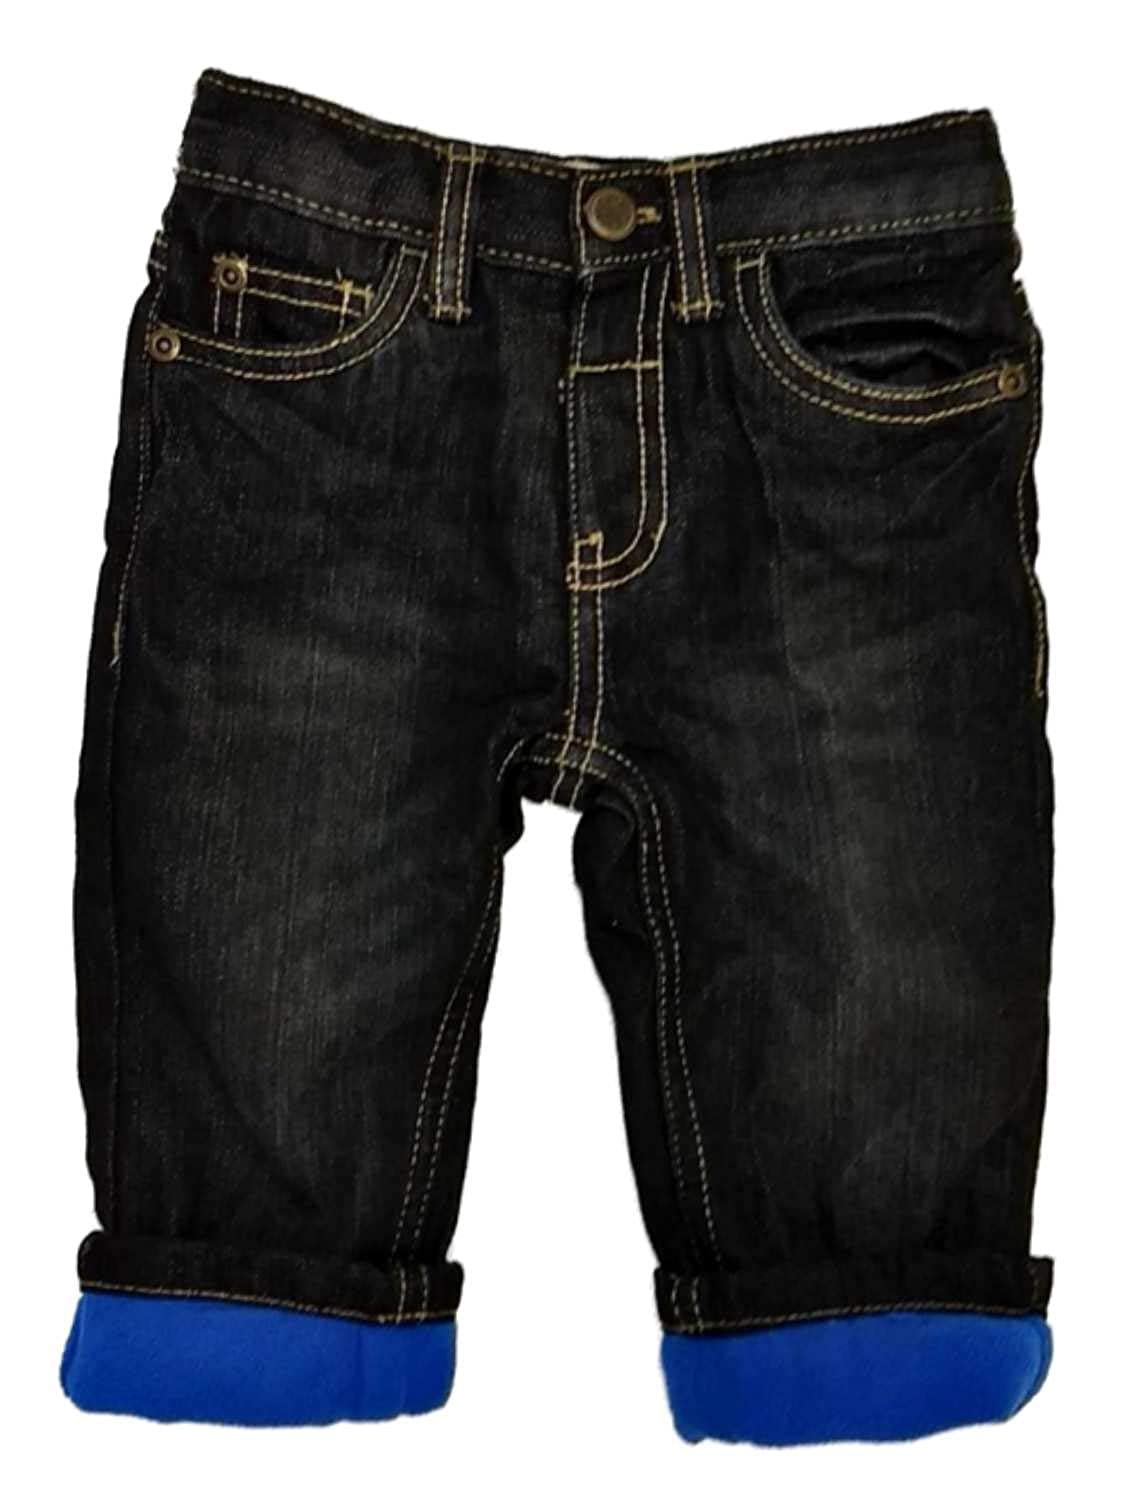 Toughskins Infant Boys Black Relaxed Fit Fleece Lined Jeans Insulated Baby Pants